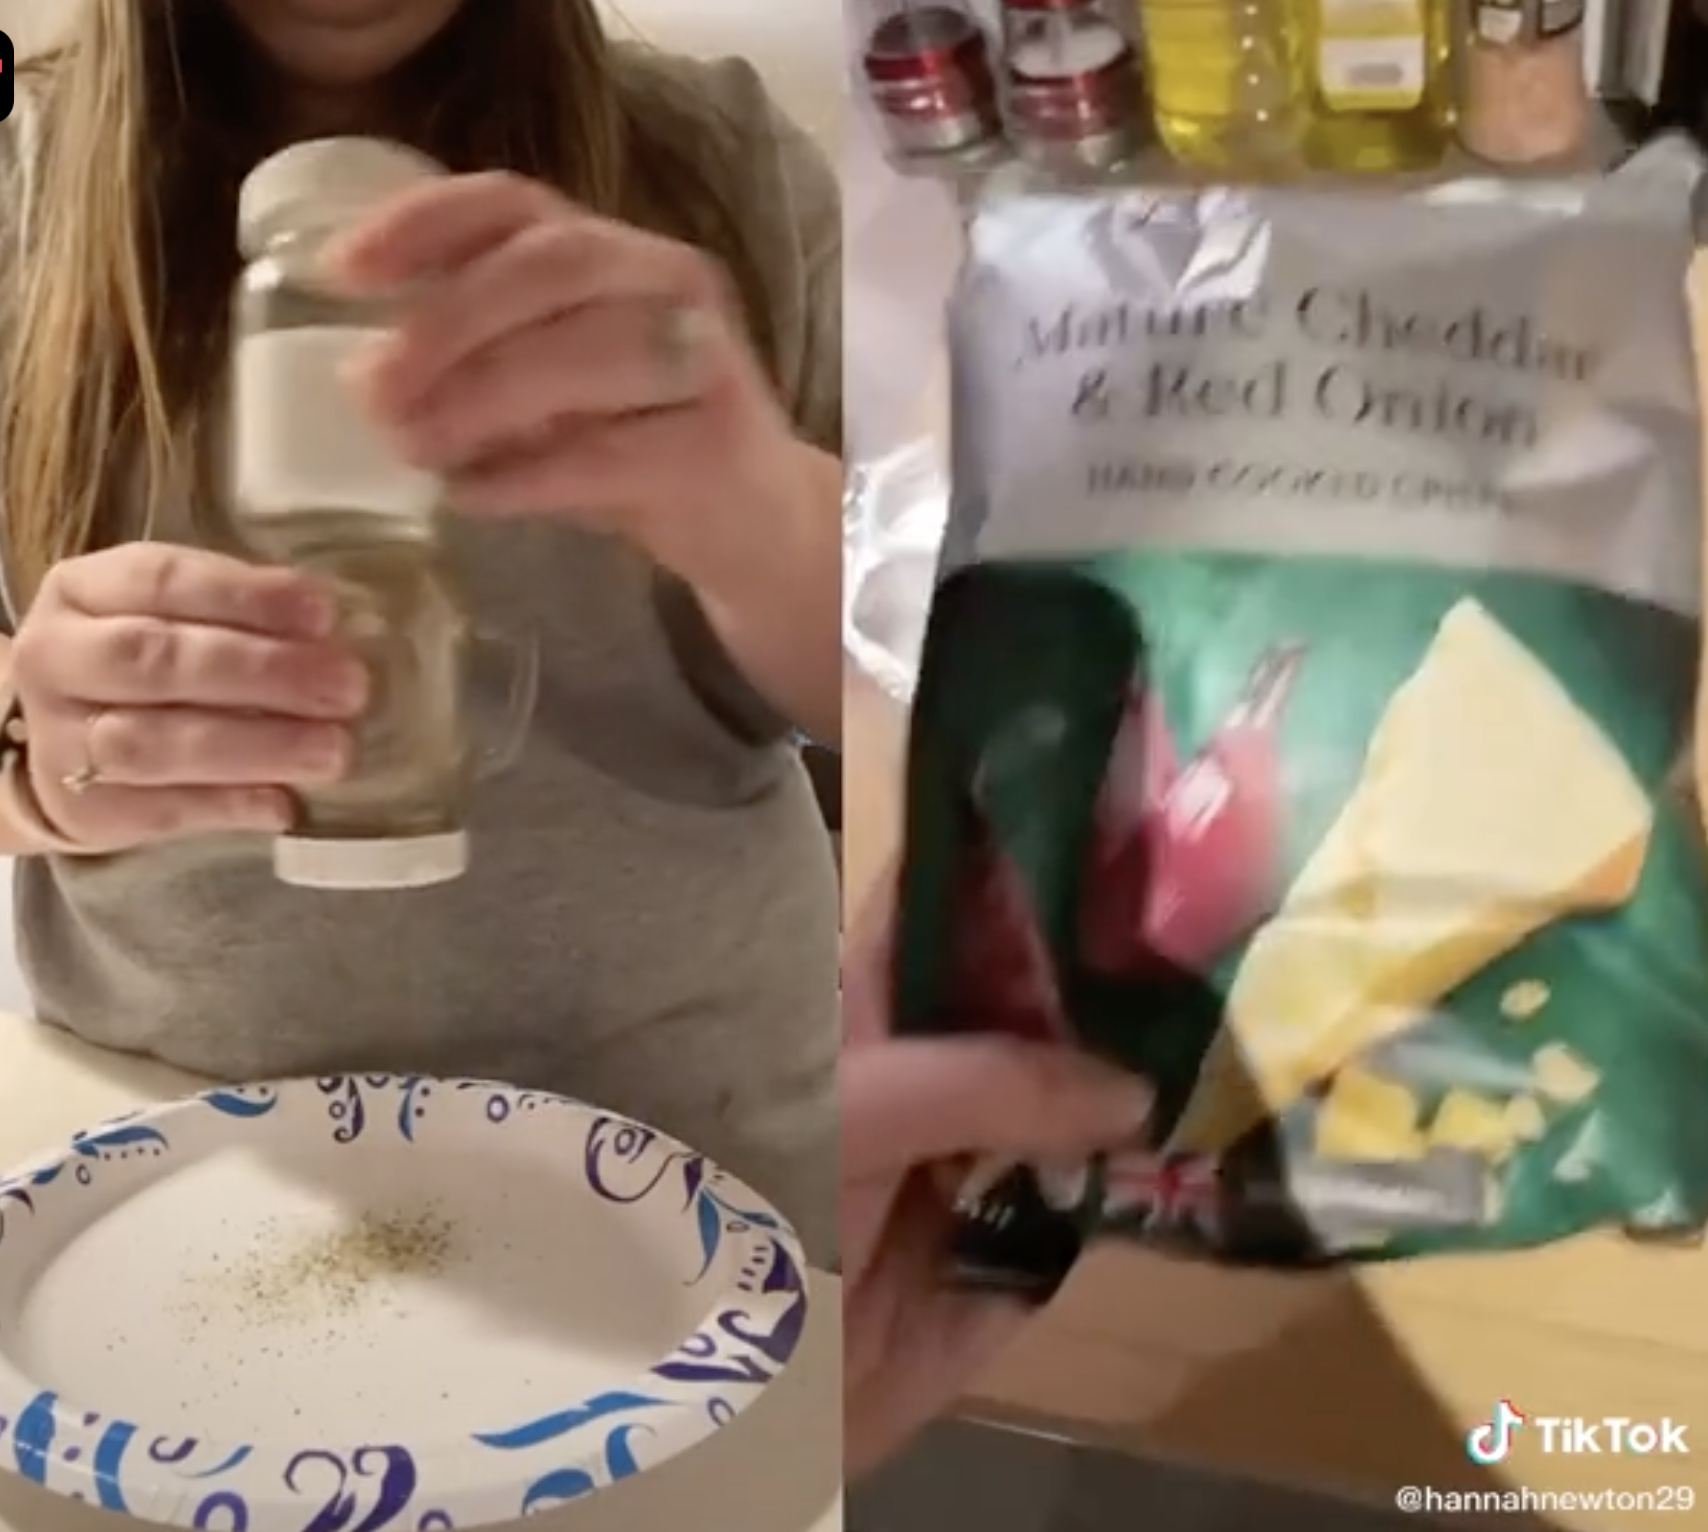 She demonstrates getting more seasoning out of a shaker onto a paper plate